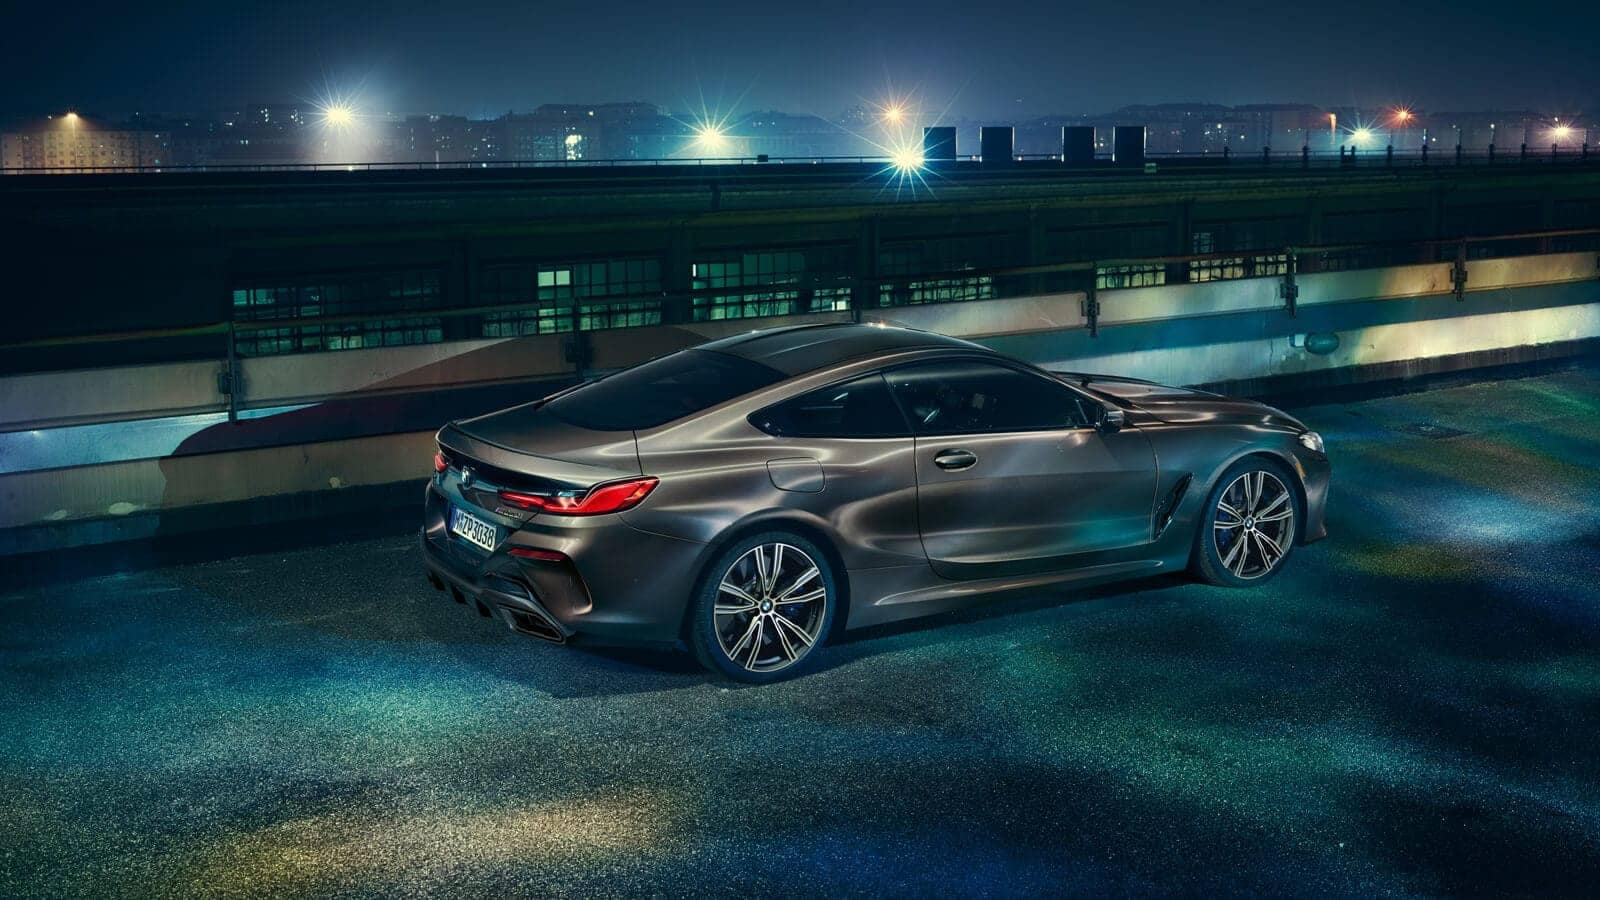 2019 BMW 8 Series in city at night